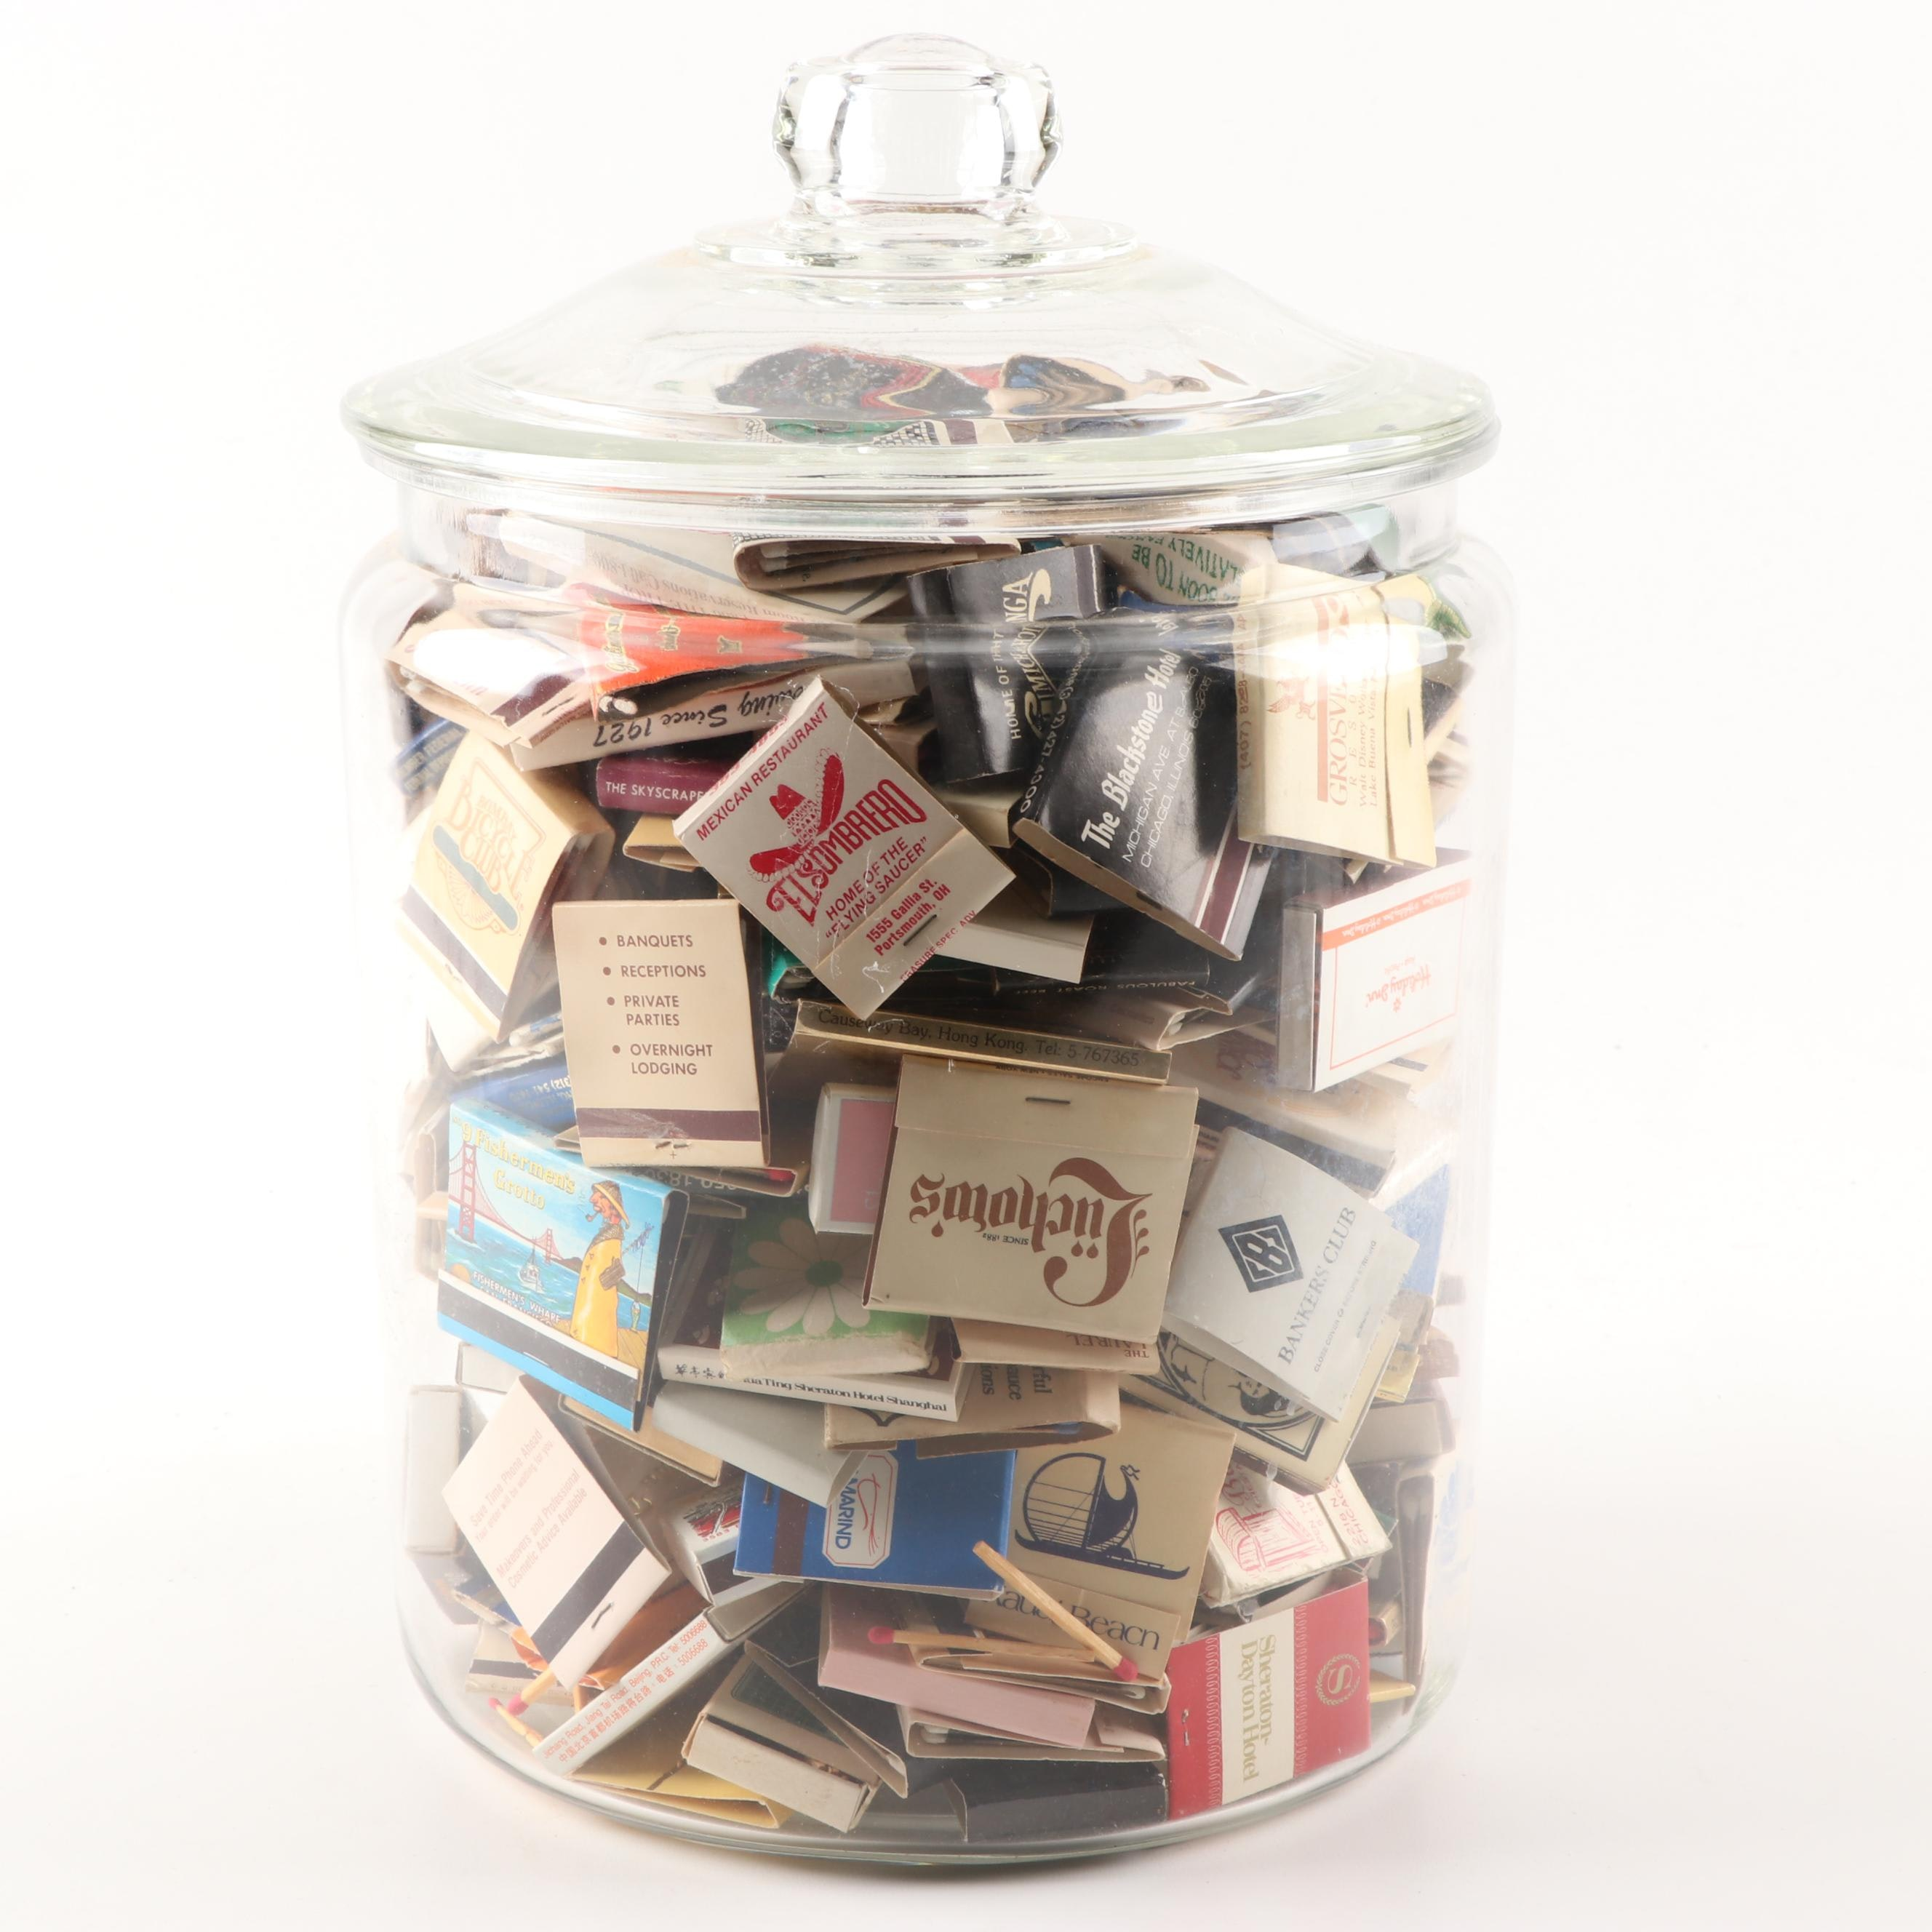 Matchbooks and Boxes in Glass Jar